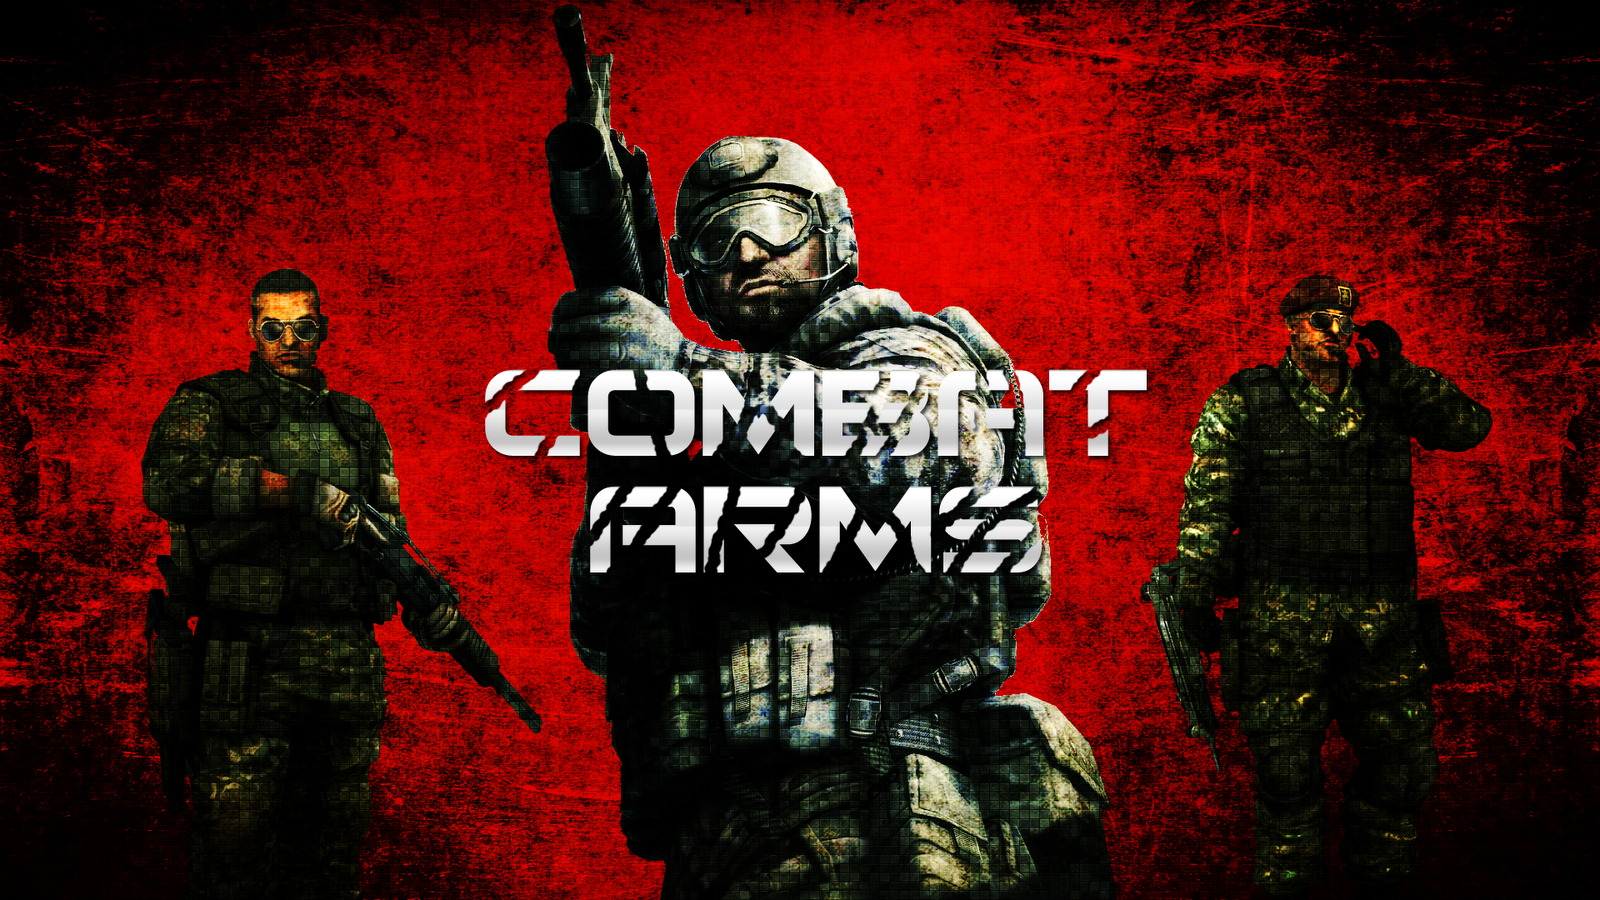 Combats arms